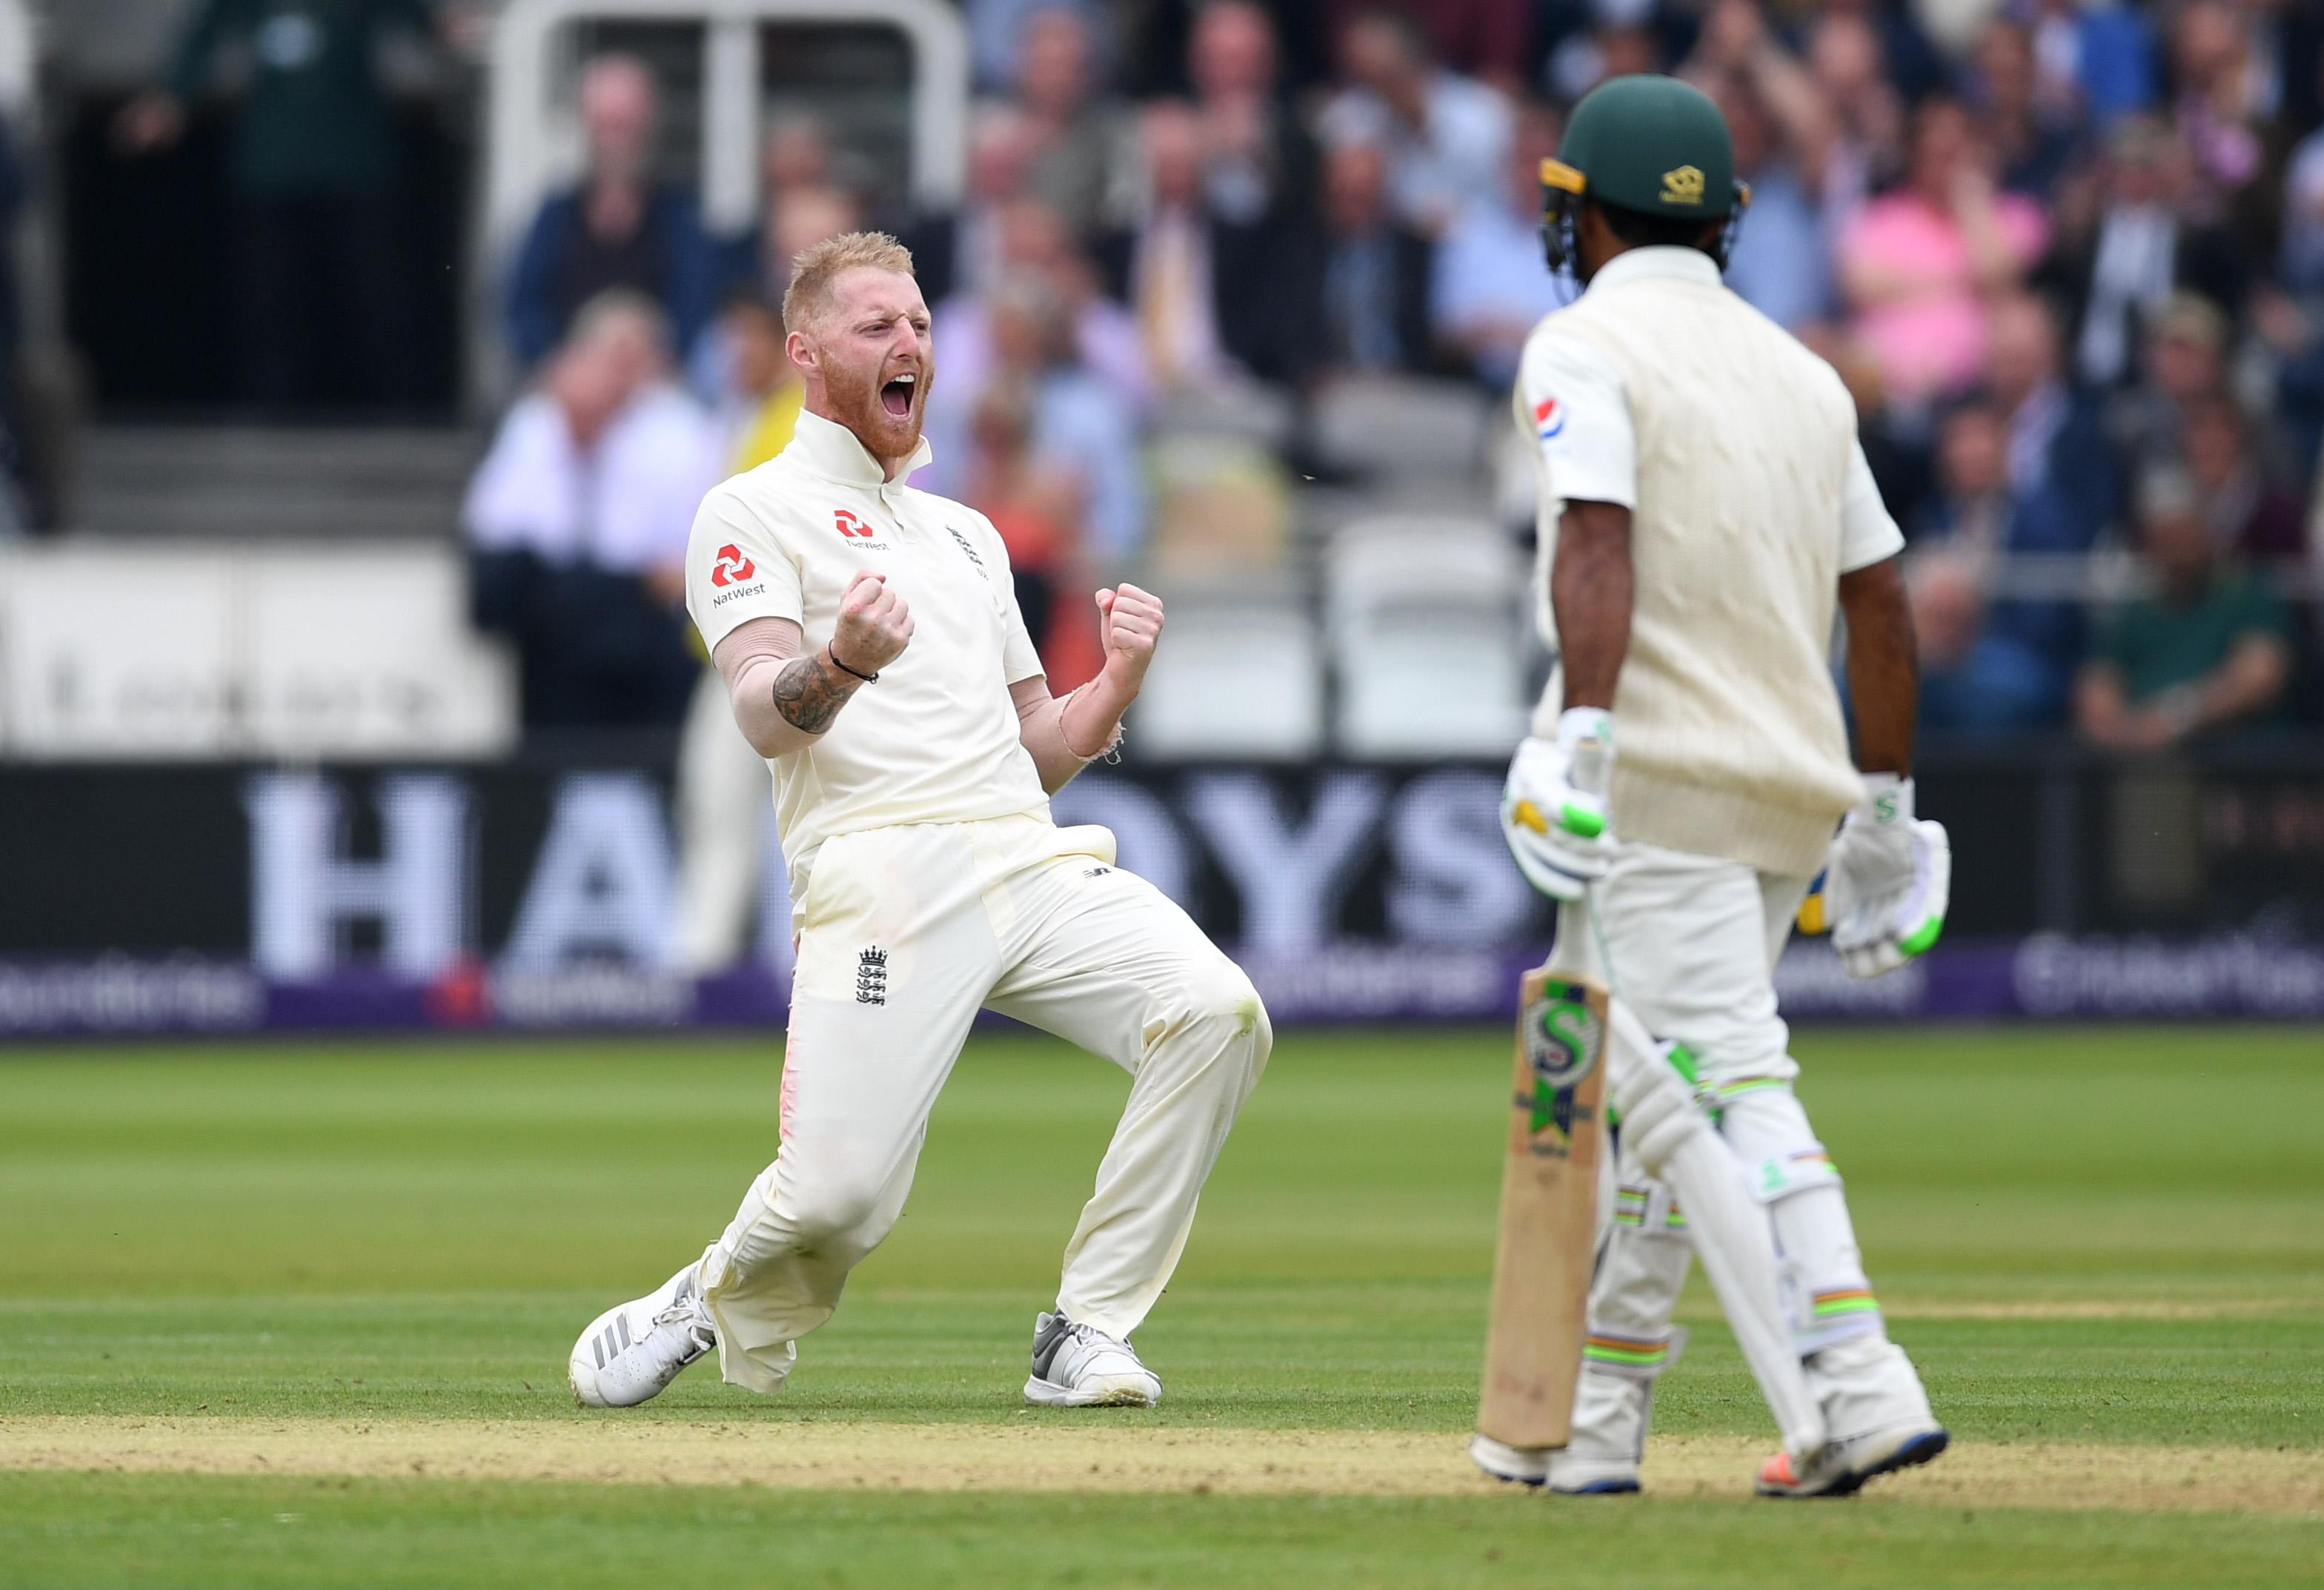 Ben Stokes took three wickets to keep England in with a chance in the first Test